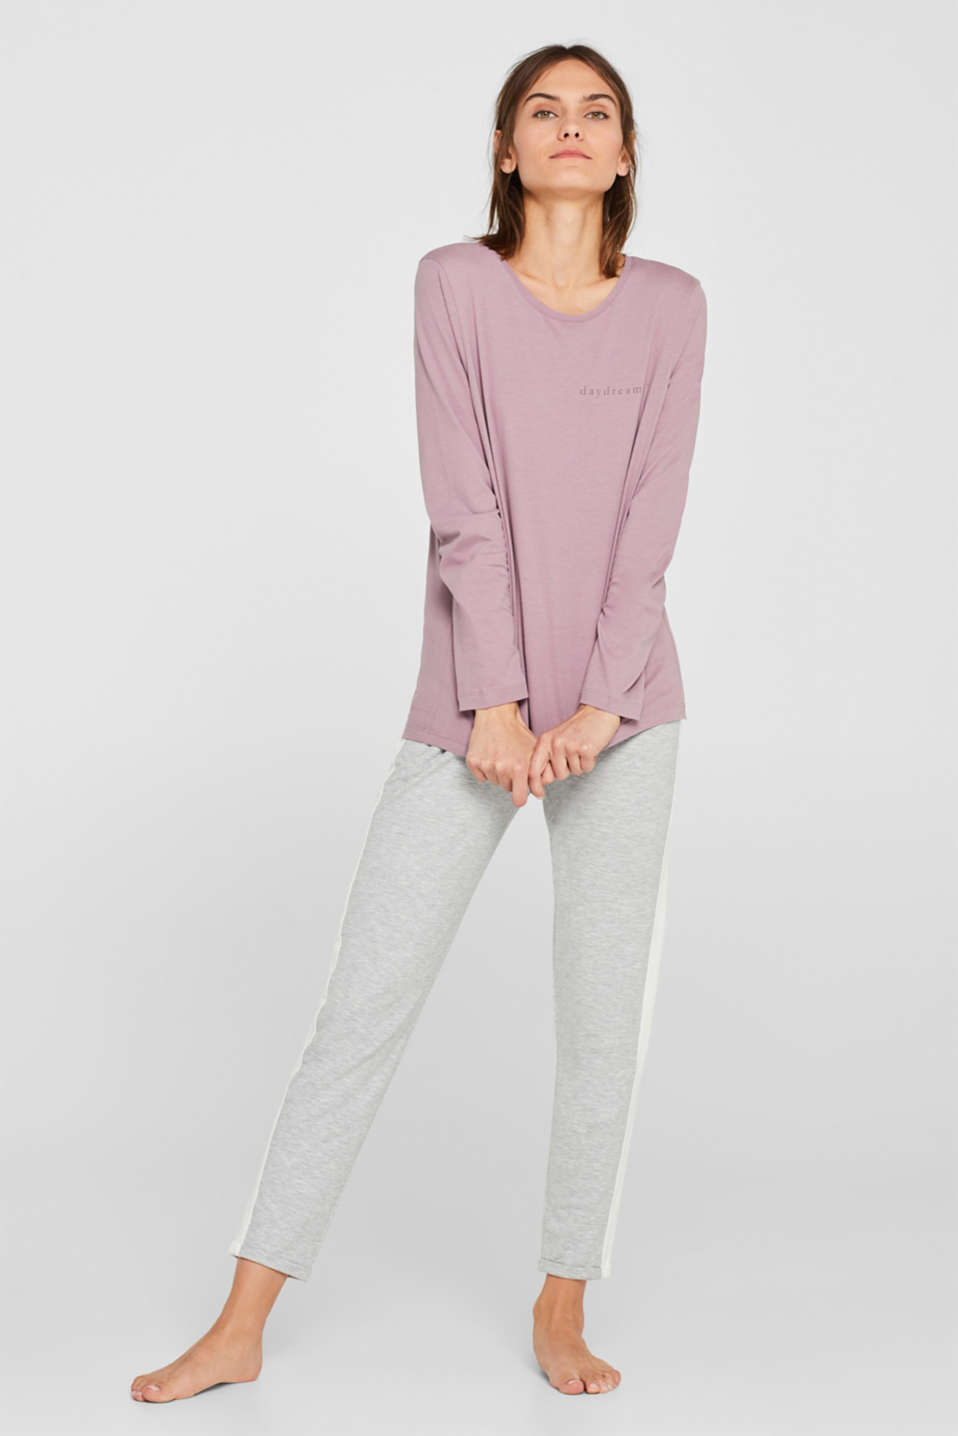 Esprit - Printed long sleeve top, 100% cotton